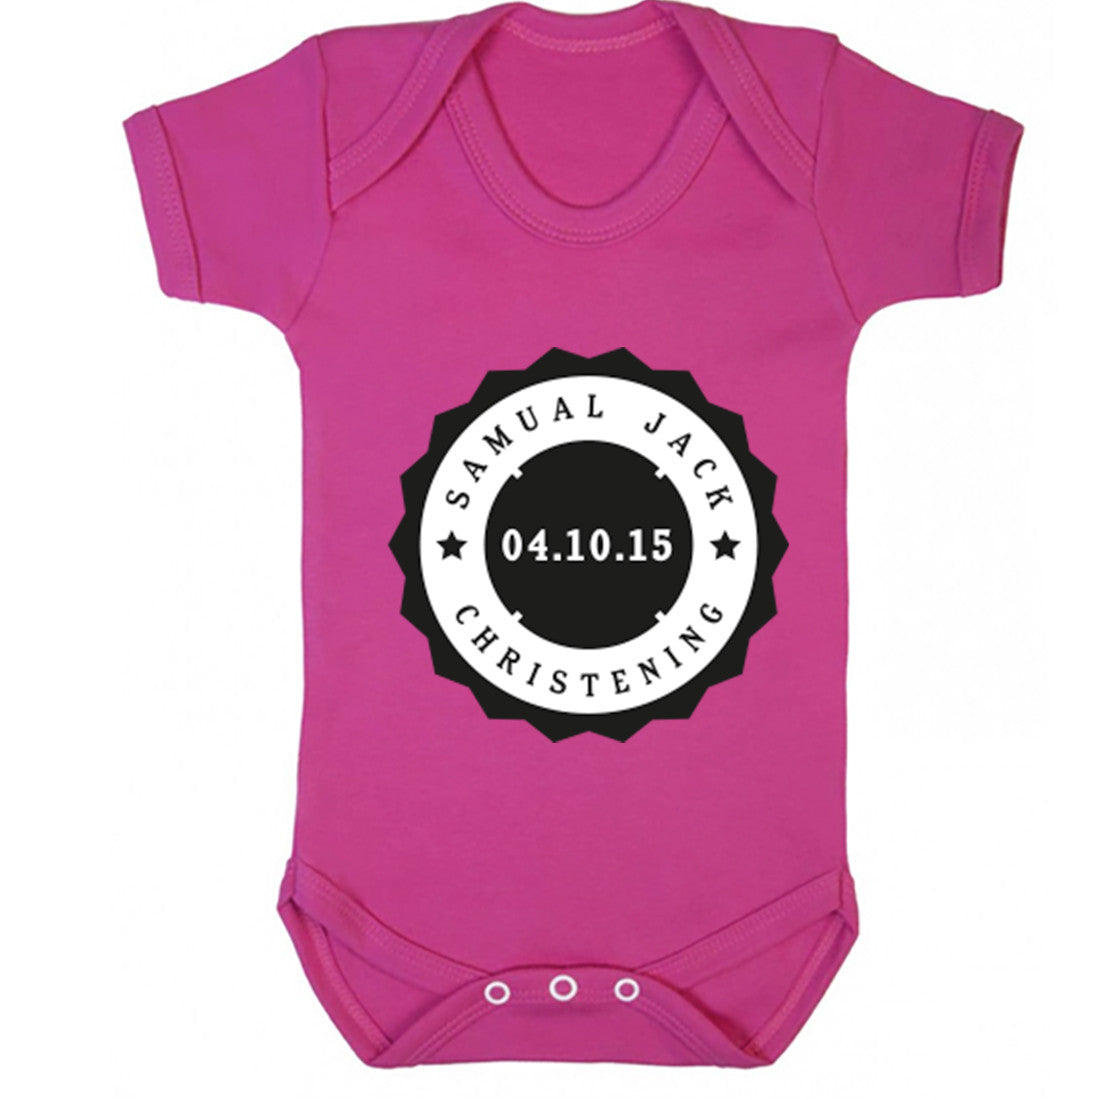 Christening Date Baby Vest K0113 - Illustrated Identity Ltd.